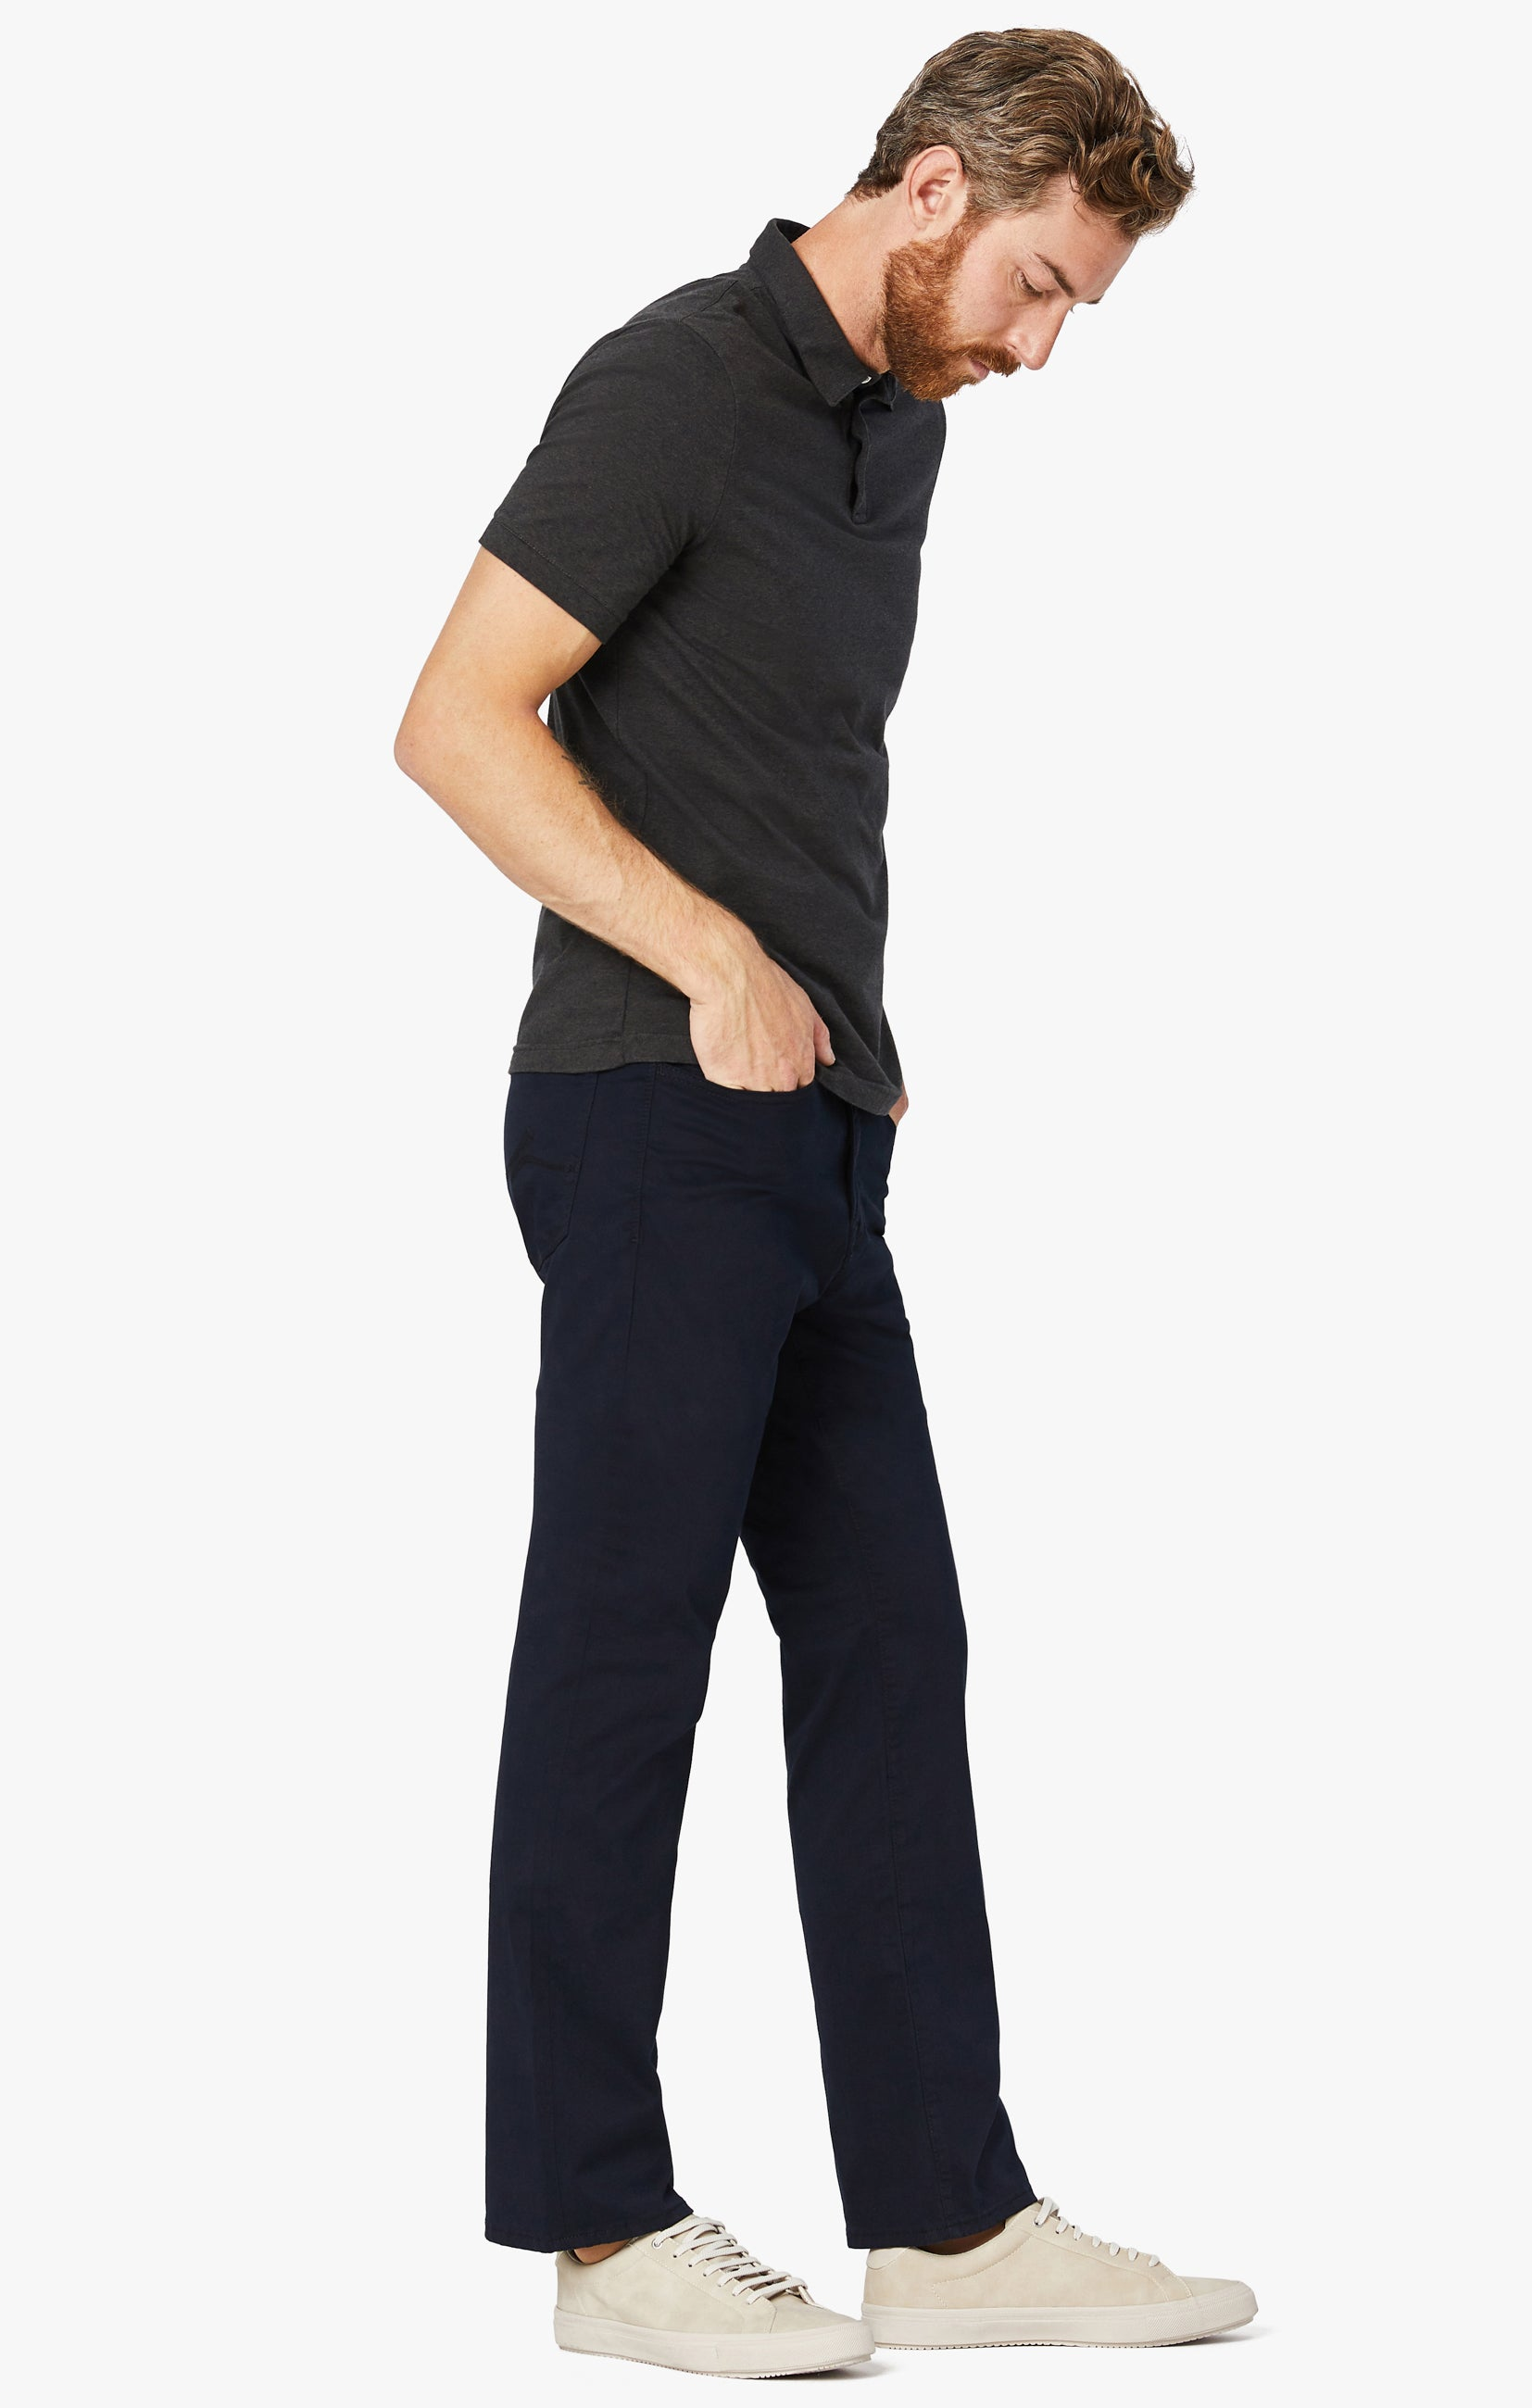 Charisma Relaxed Straight Pants in Navy Twill Image 9